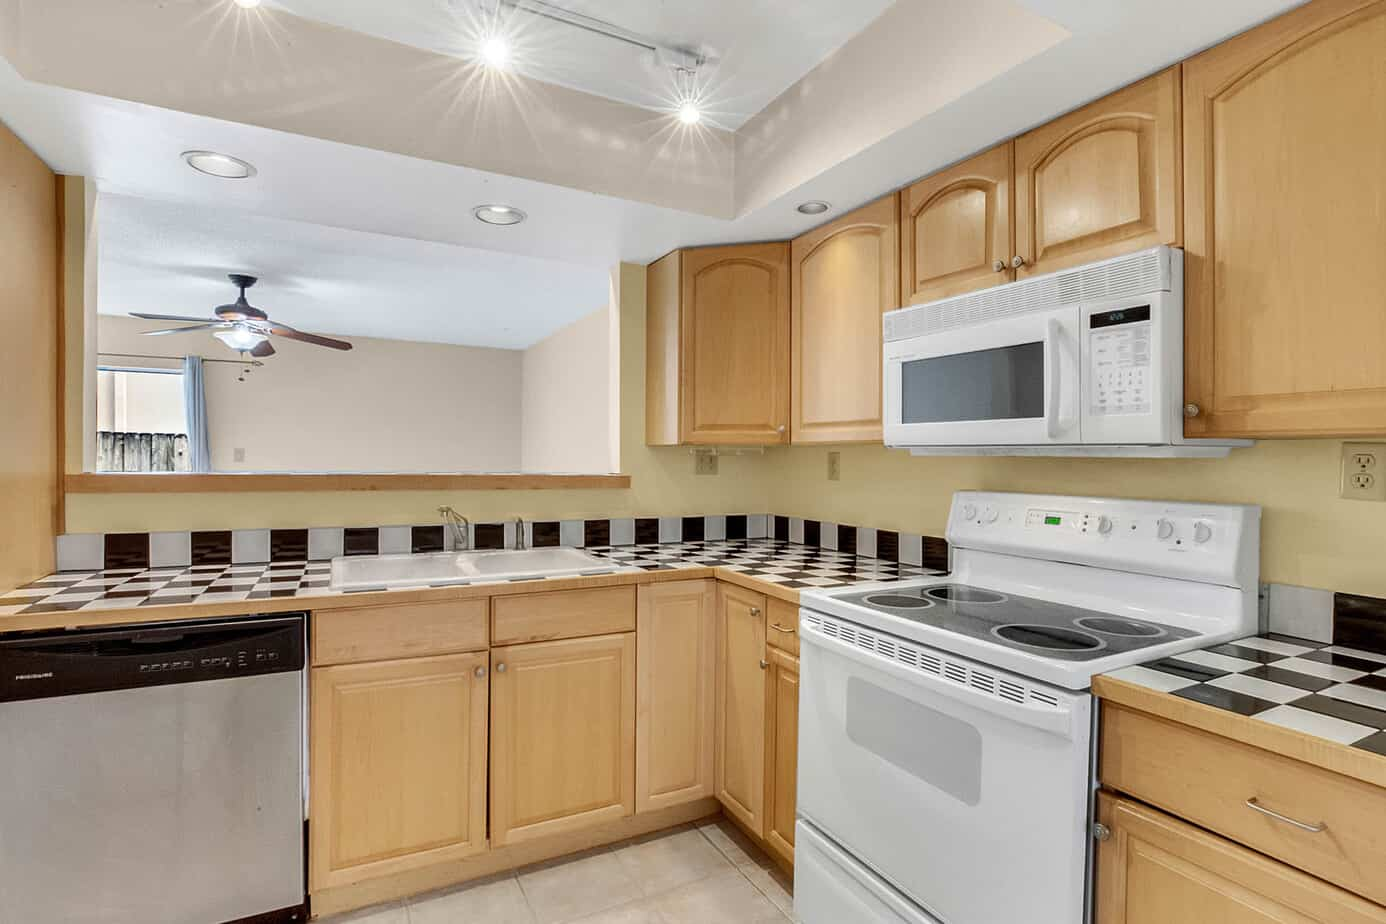 kitchen at 408 S Arrawana Ave Tampa FL 33609 with checkerd countertops